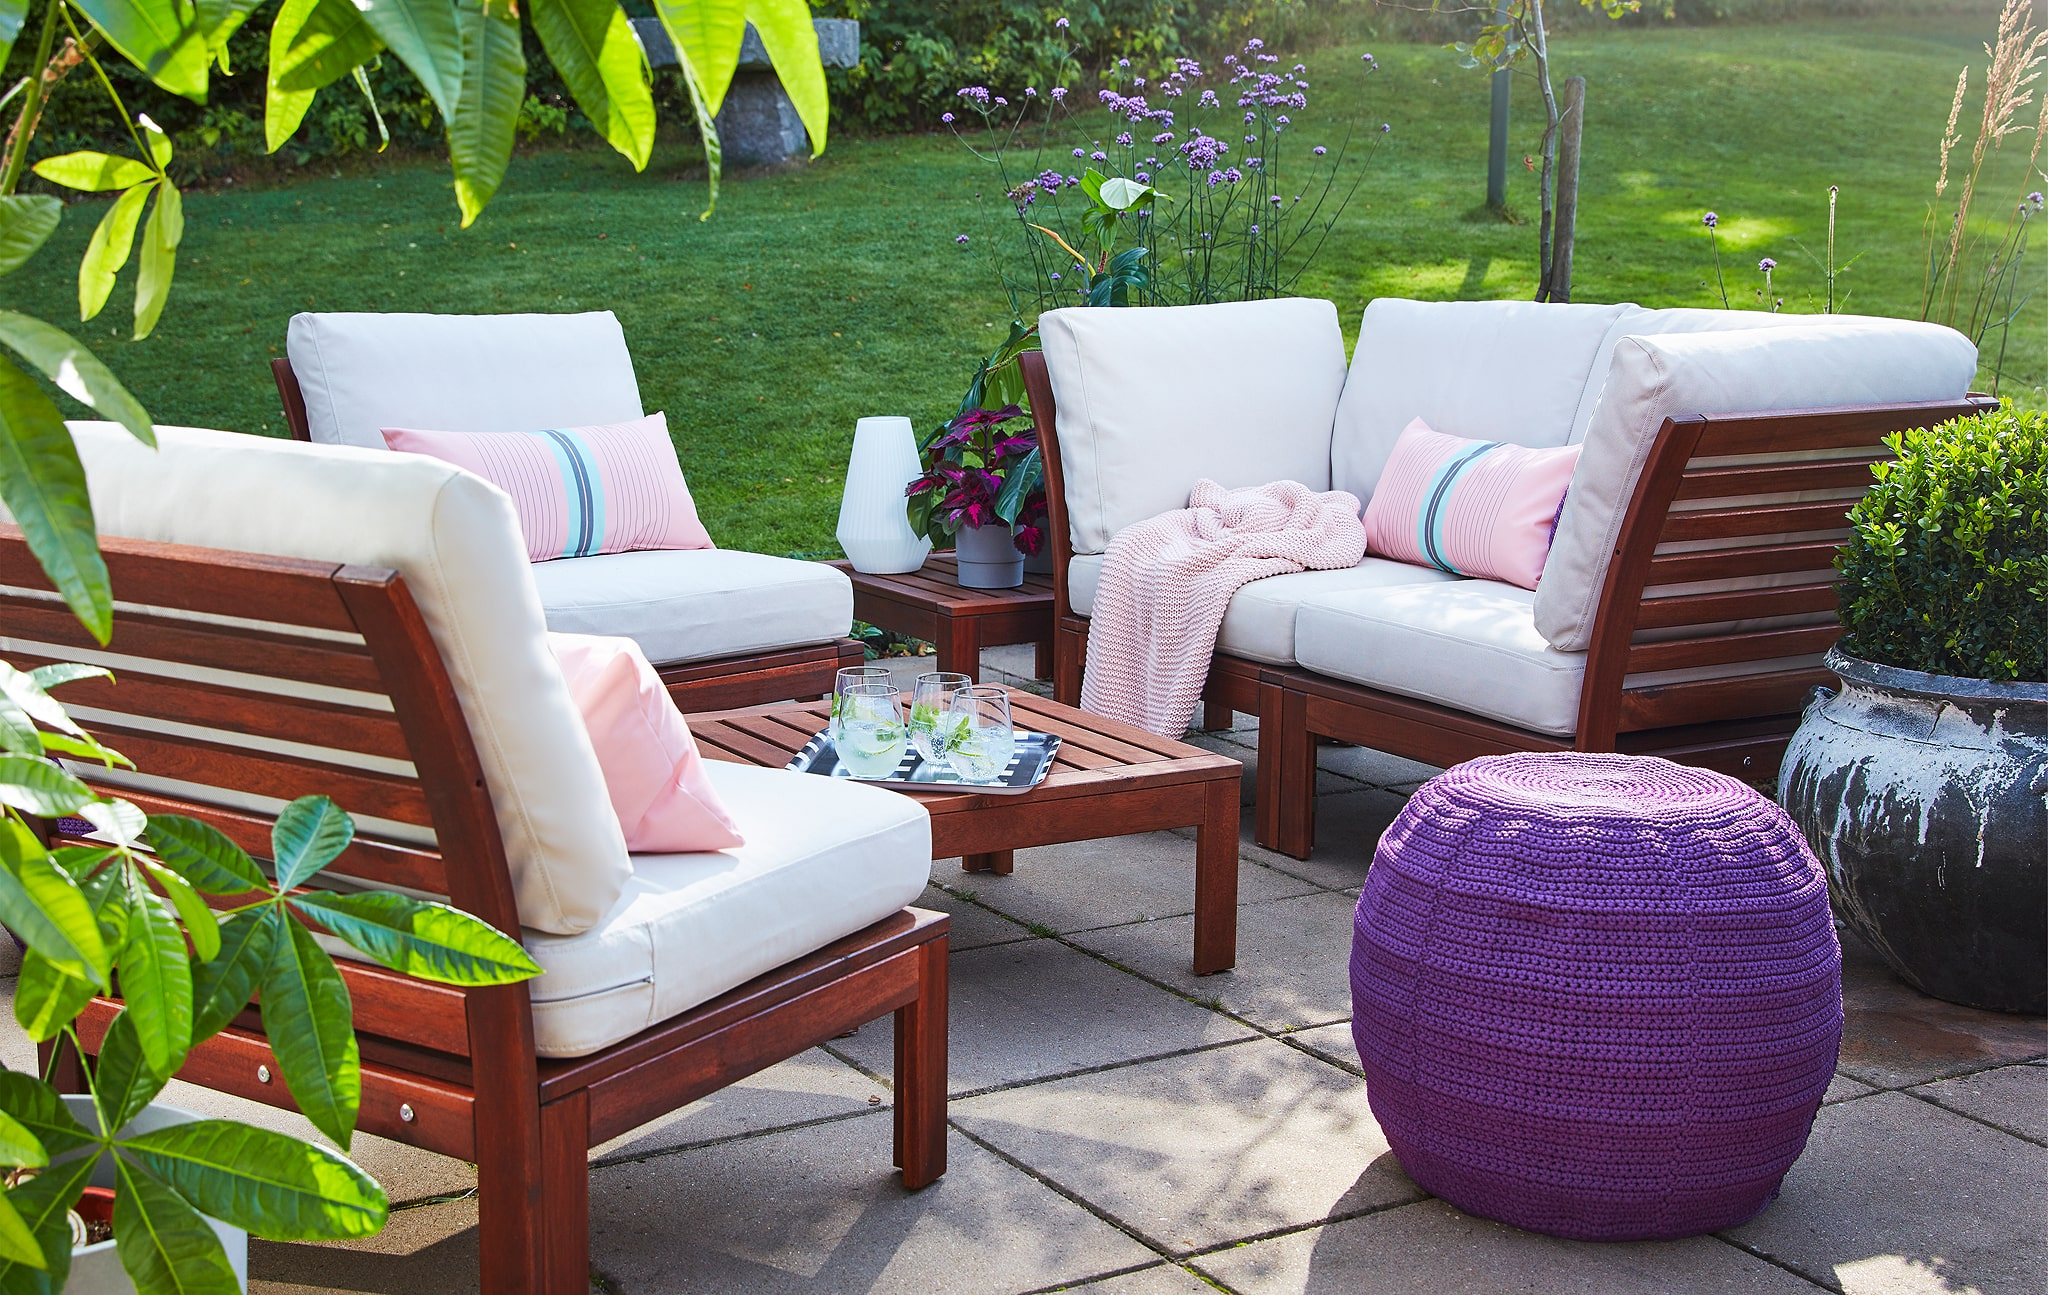 Wooden outdoor furniture with white and pink cushions, shown on a grey stone terrace.